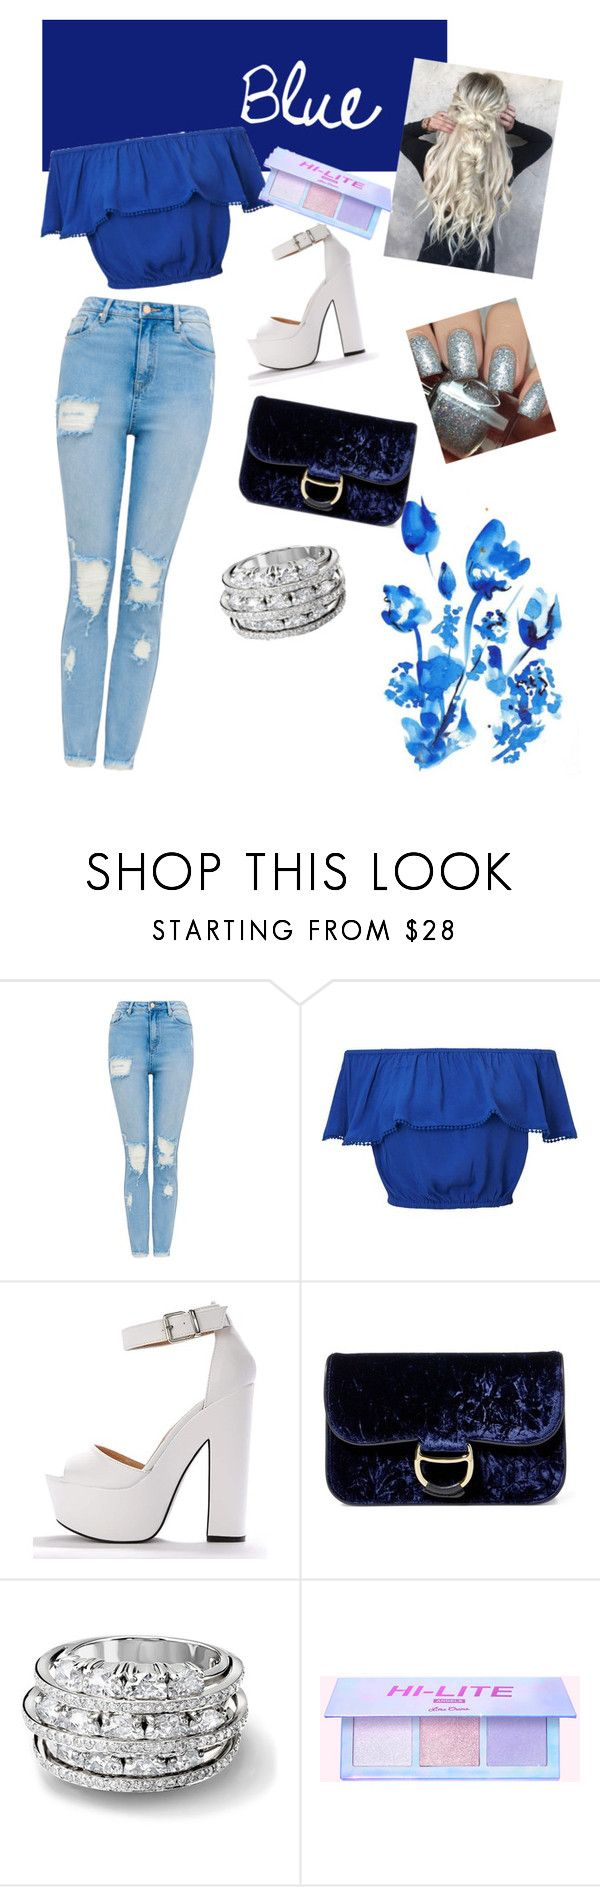 """Blue love"" by matessed ❤ liked on Polyvore featuring beauty, Miss Selfridge, Polo Ralph Lauren and Dimepiece"